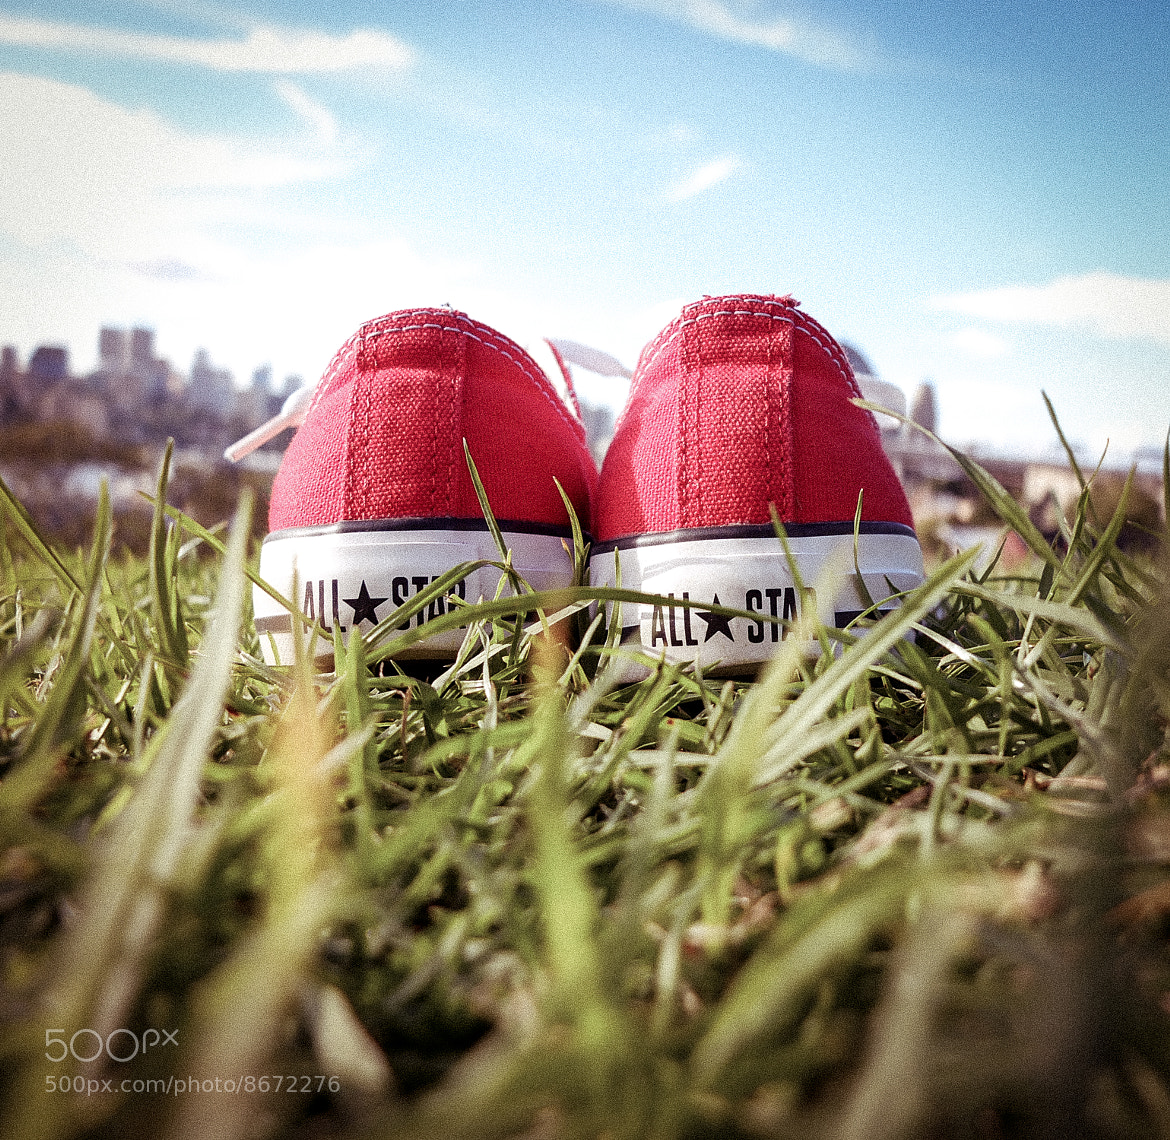 Photograph Just chillax by Inny So on 500px